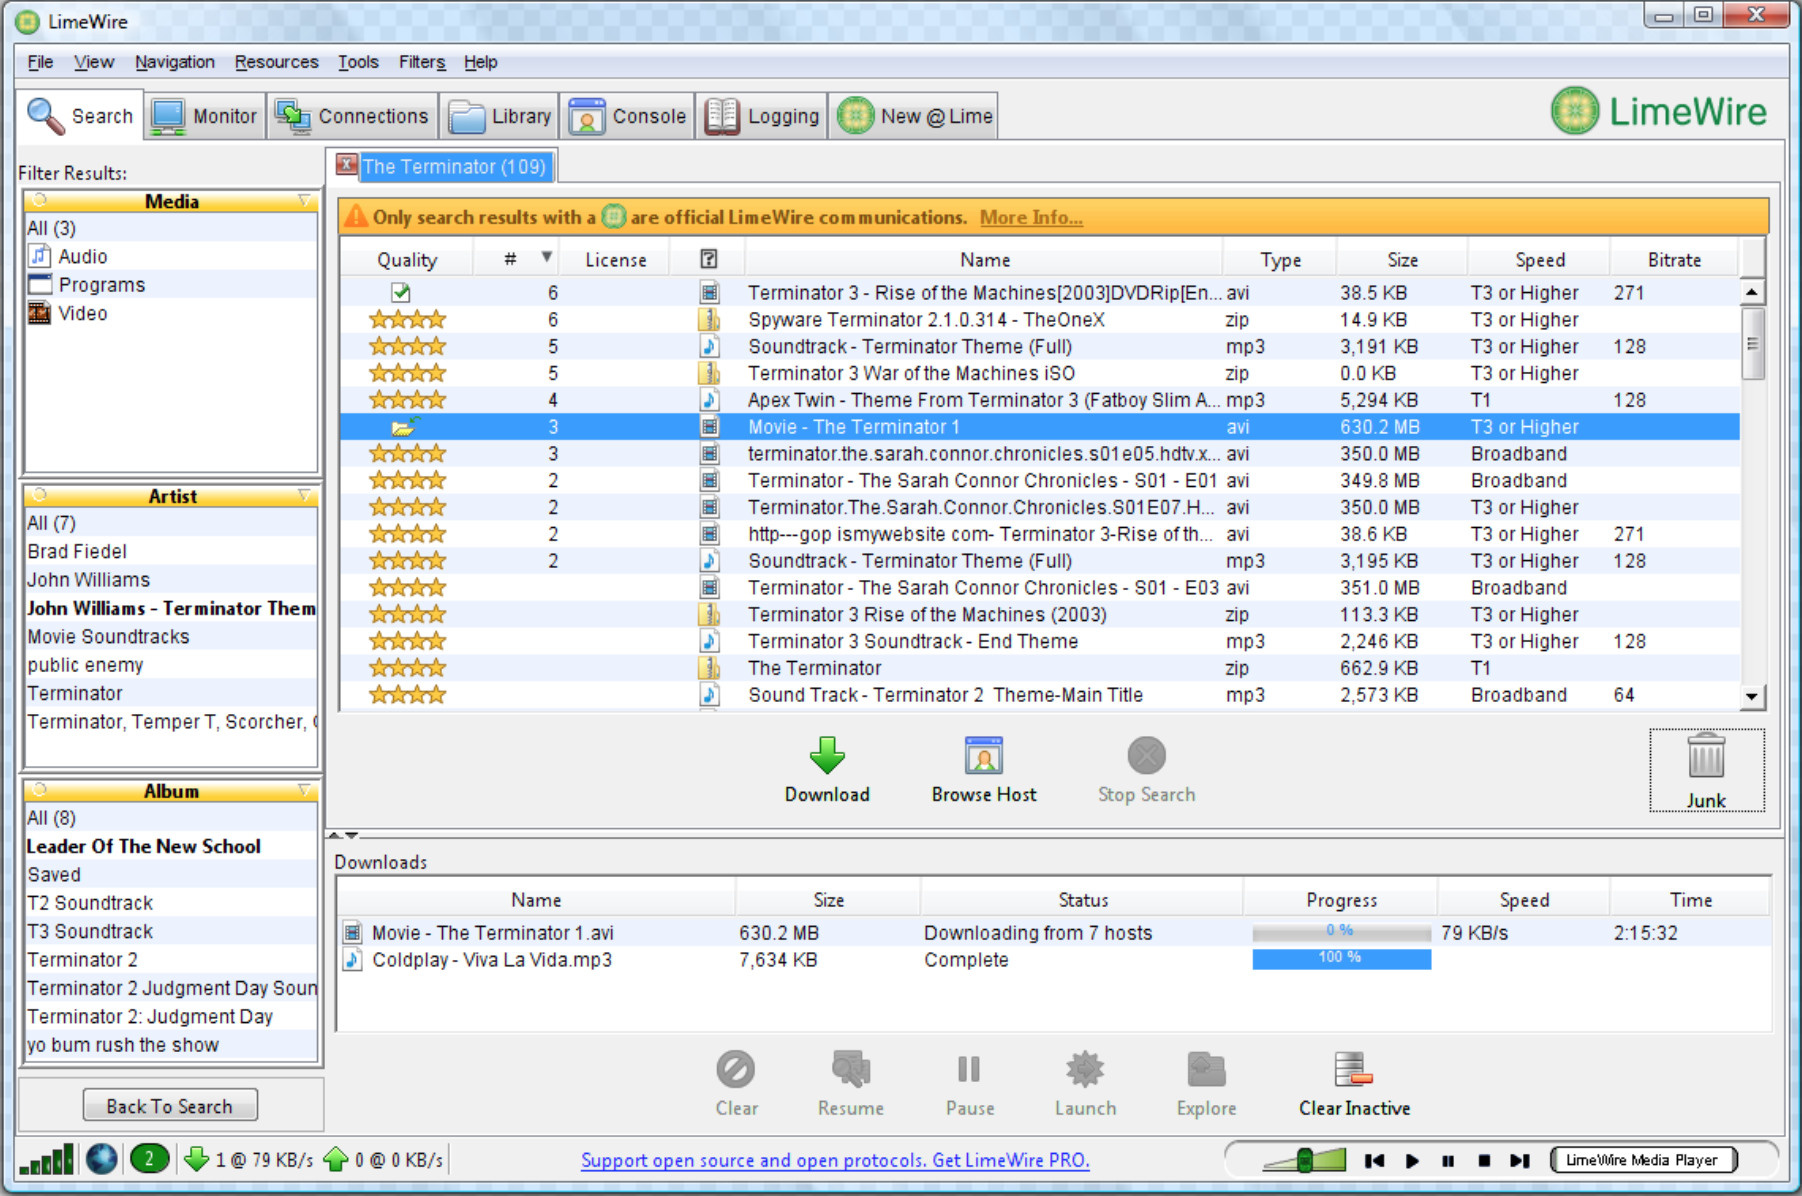 LimeWire: The Oral History Of The App That Changed Music